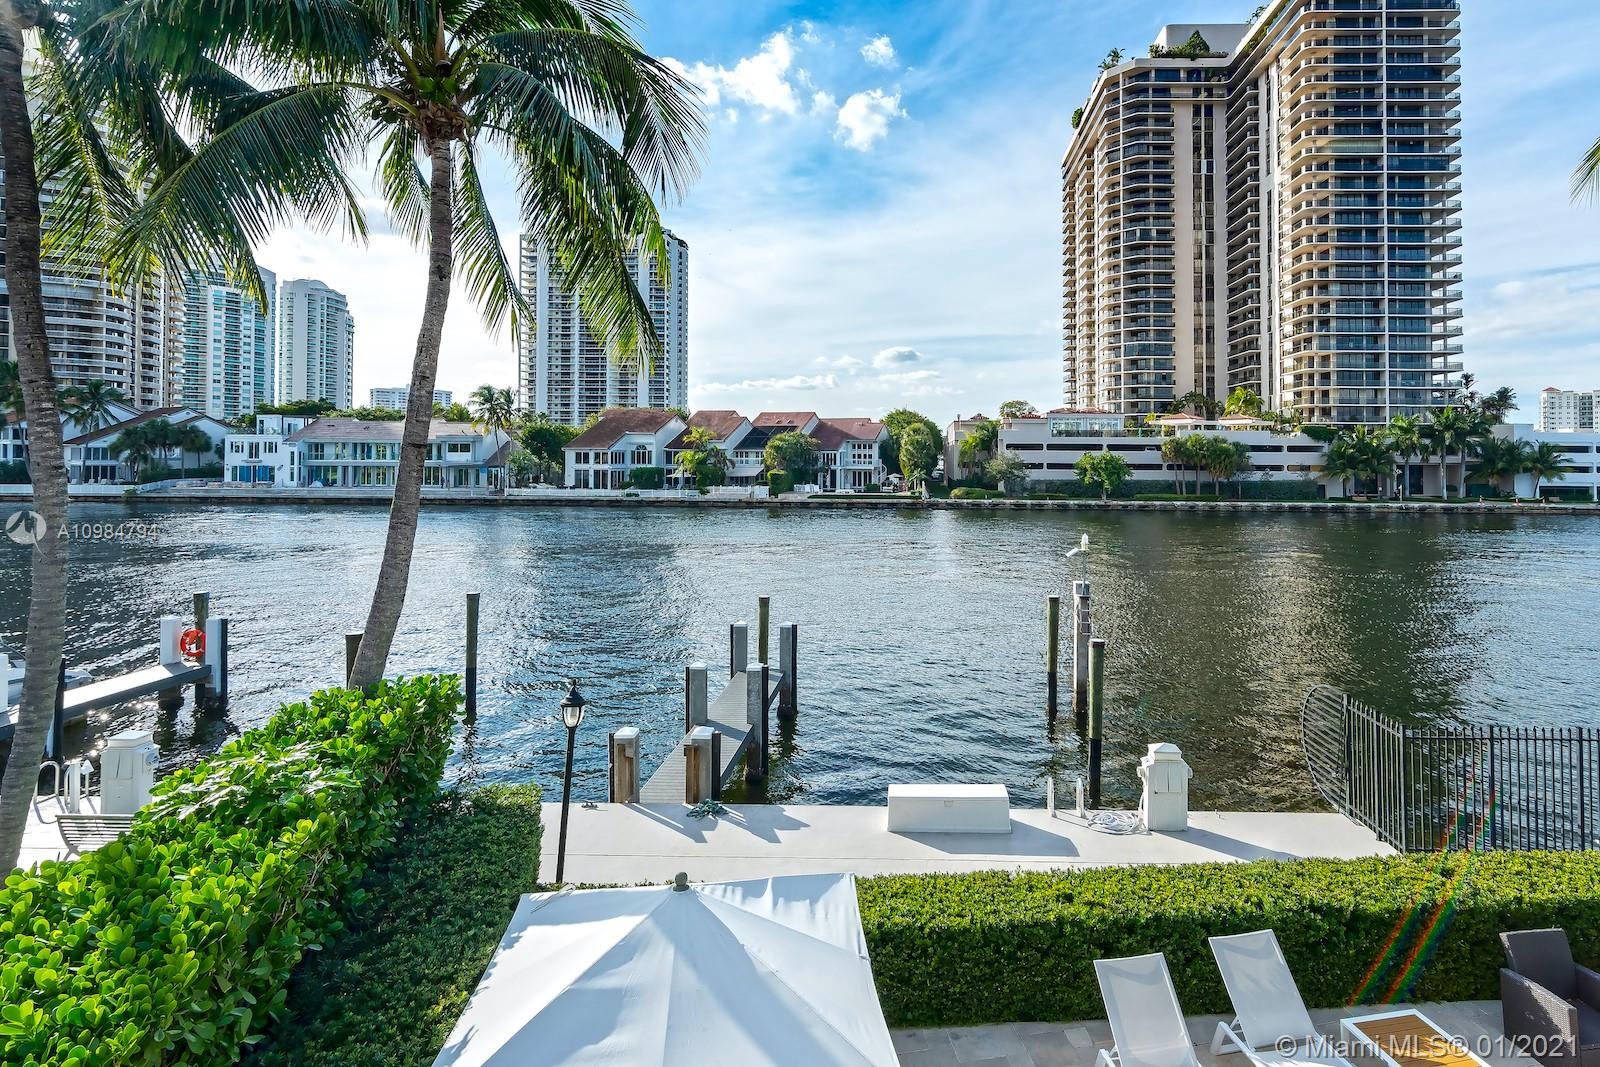 Completely remodeled WATERFRONT PROPERTY with your own dock (can fit up to 72' boats).Magnificent 5 bed-4.5 bath plus a completely staff quarter(1 bed- 1 bath) located in this private gated community. This property is walking distance to the beach, with its own marina , tennis court, and kids playground. Finest finishes include, Marble floors , impact windows, brand new kitchen , lighting , and automatic window treatments. Spectacular 50' waterfront outdoor backyard,  to enjoy family BBQ, pool days and more.